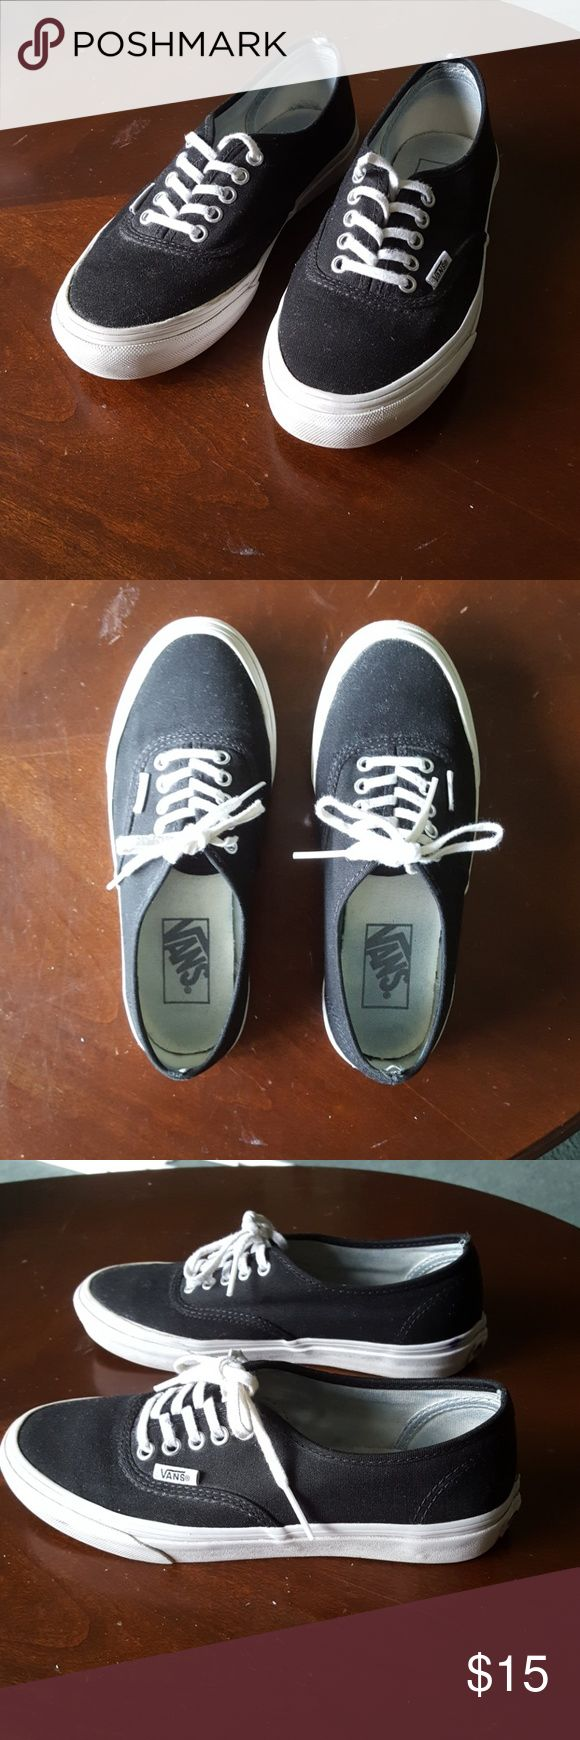 Vans black with white Black and white vans are a womens 5.5 and mens 4. Have been worn and show some signs of wear, but in great shape except for a few flaws including the pen ink shown on the heel of the right shoe, and front of the left shoe, as well as some light dirt stains on the whites. Bottoms of shoes are both very clean. Vans Shoes Sneakers